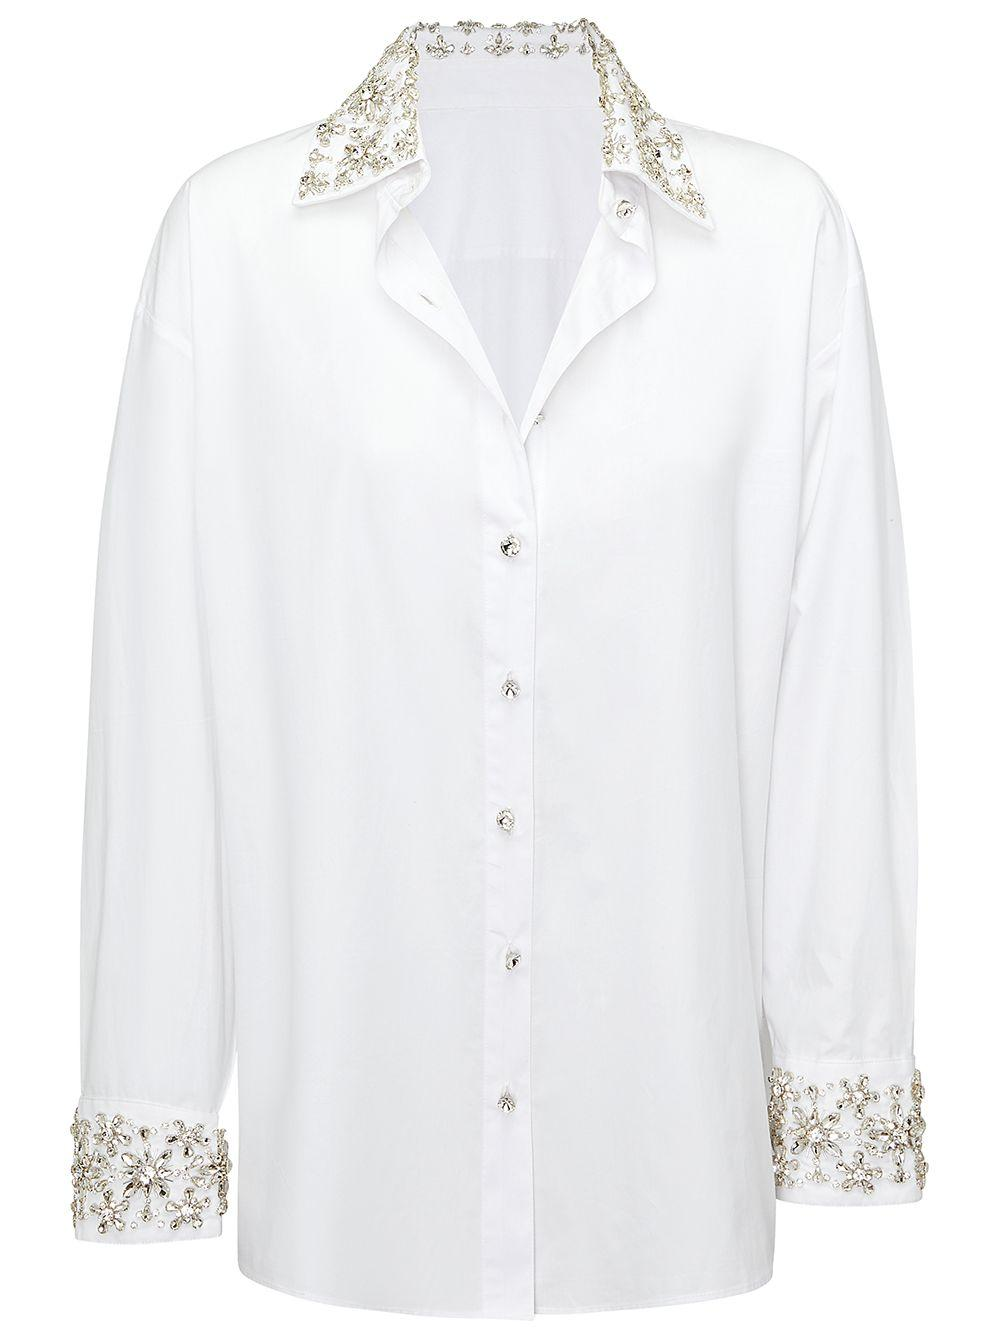 Reagan Embellished Shirt